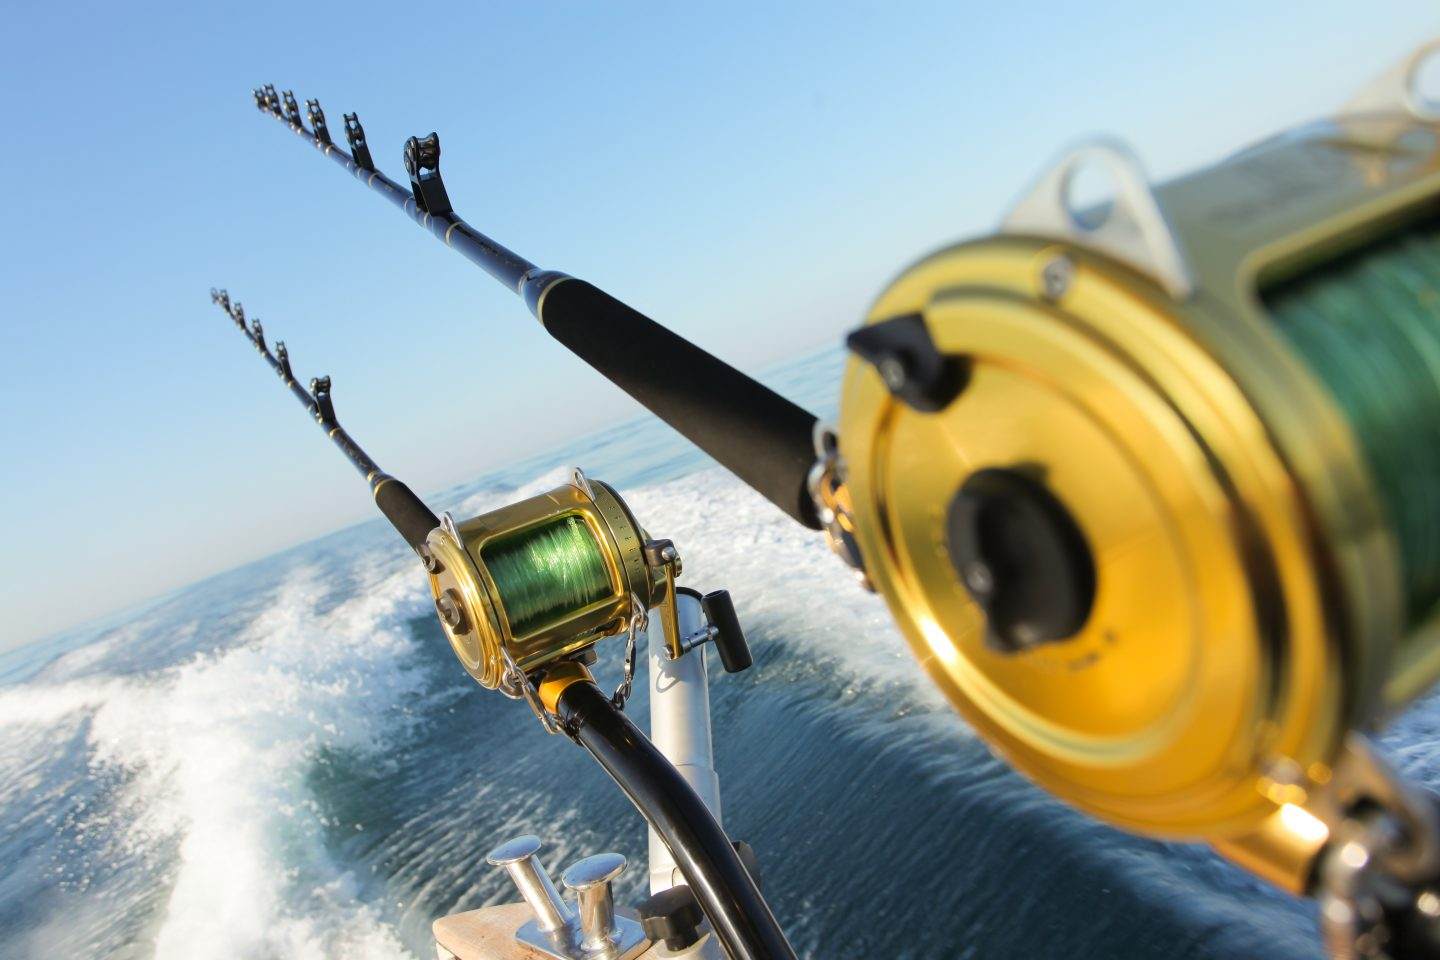 trolling rods on a moving fishing boat with the water in the background